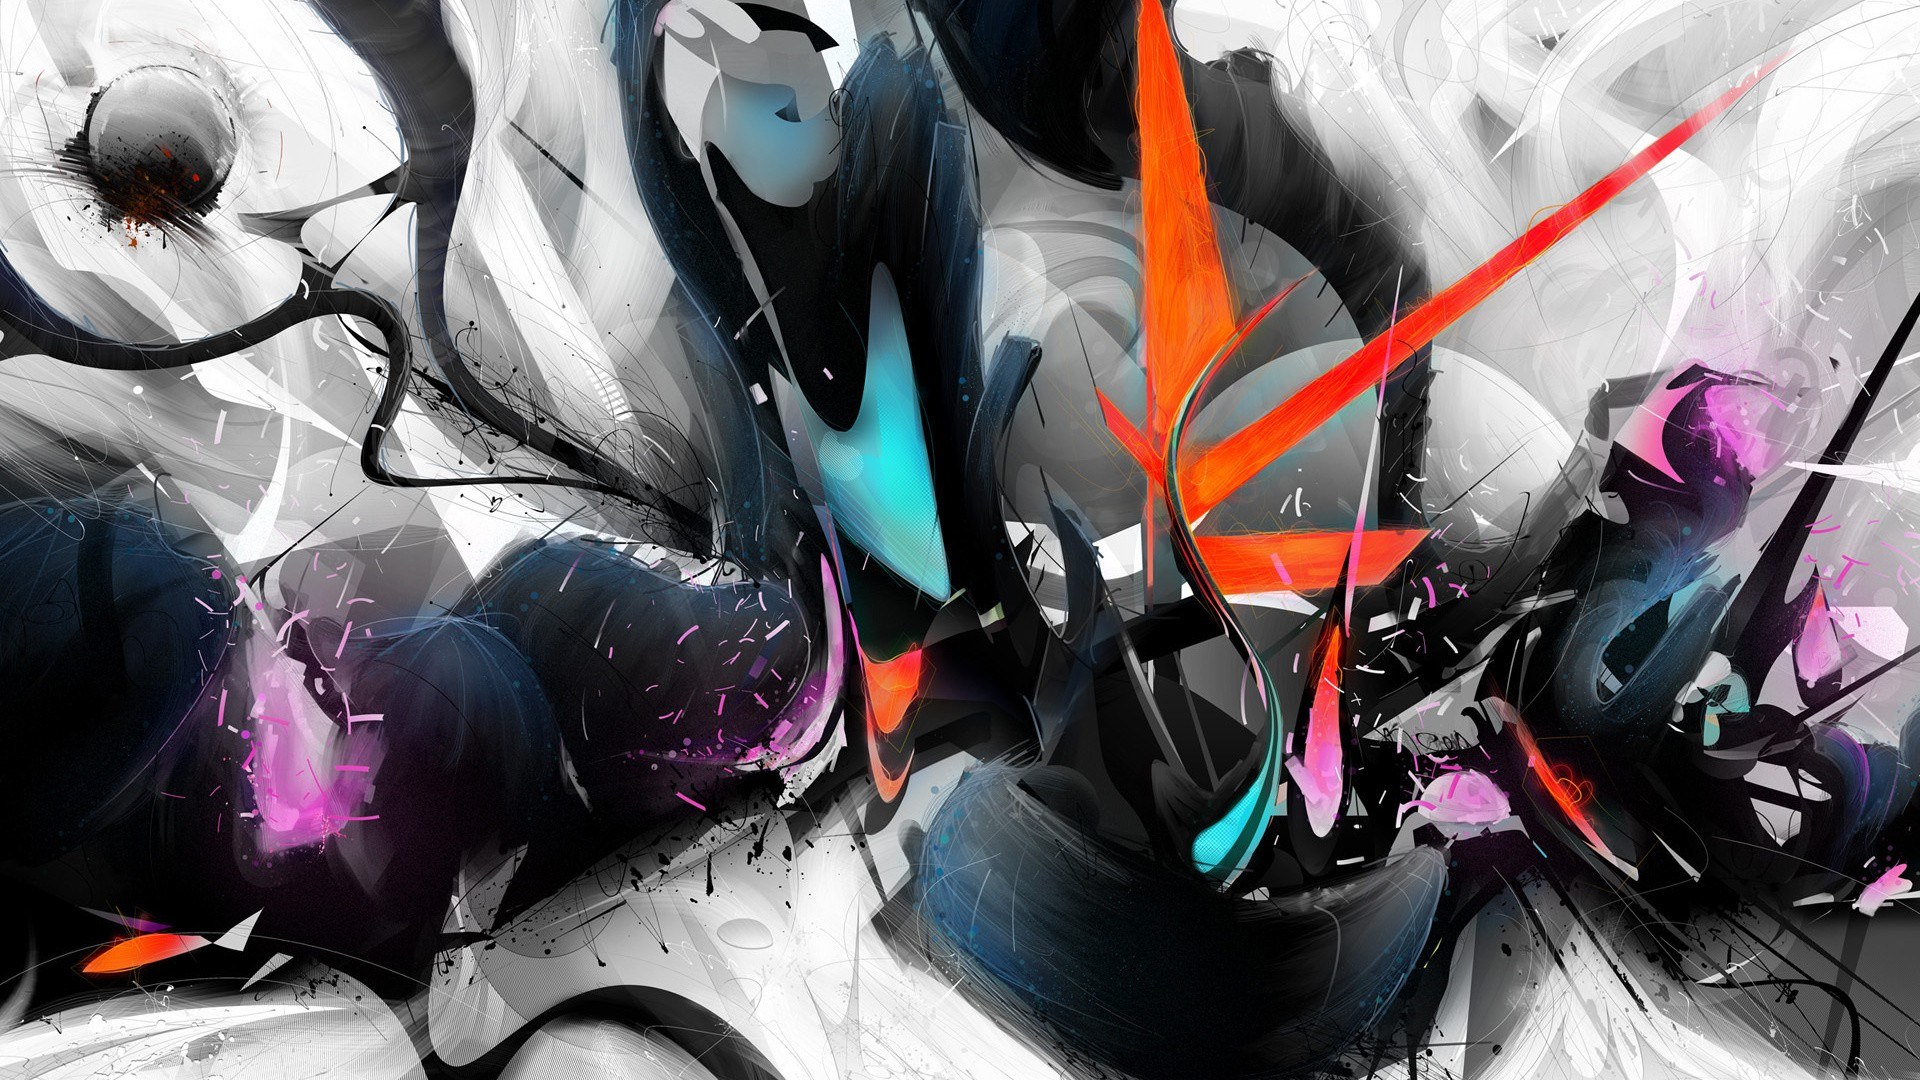 Cool abstract wallpaper designs   SF Wallpaper 1920x1080